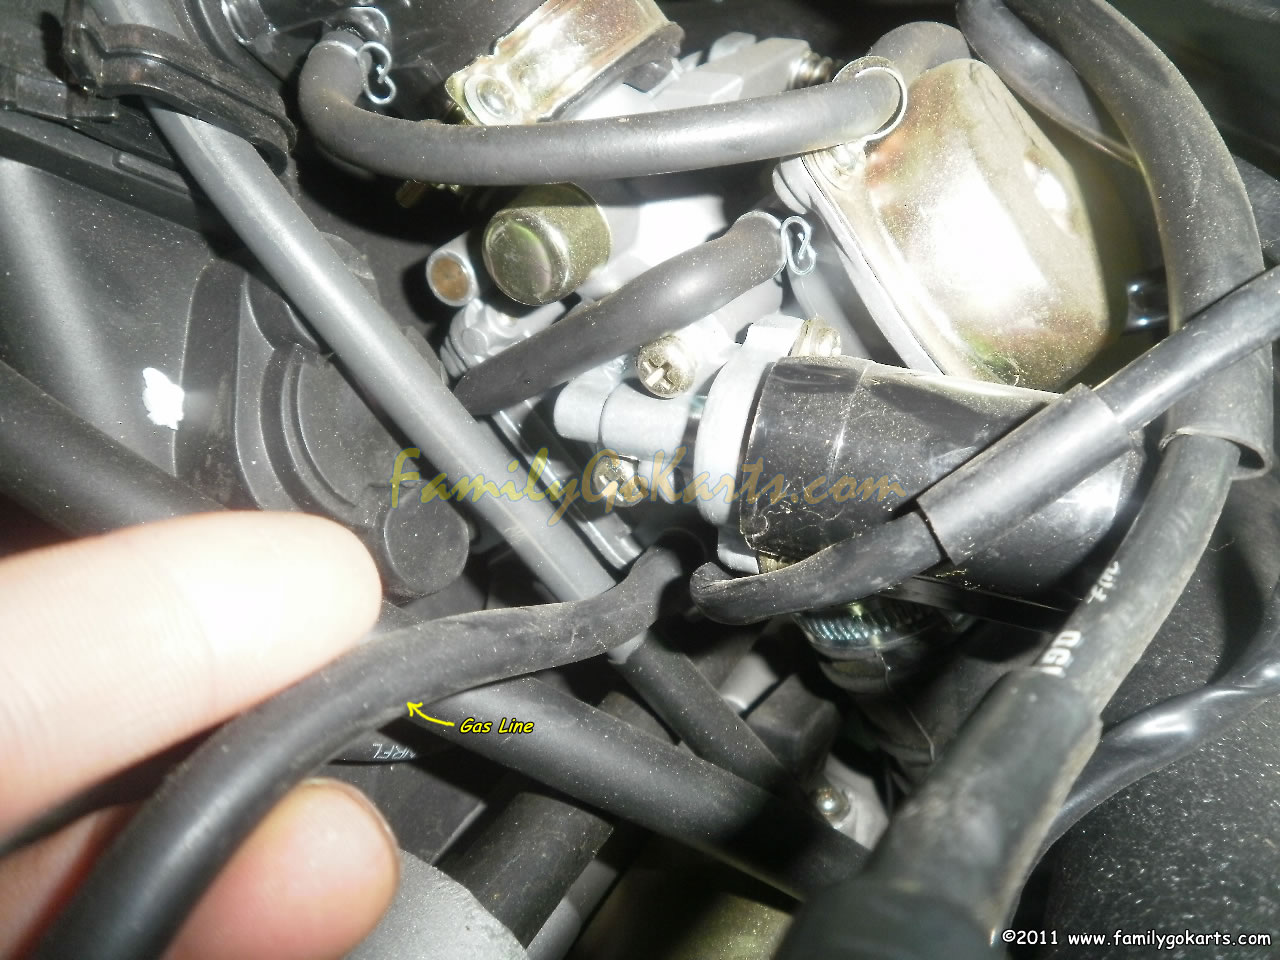 Yonghe 150cc Go Kart Wiring Diagram Carter Talon At Gmaili Italjet Torpedo 125 T4 2003 Images 98101